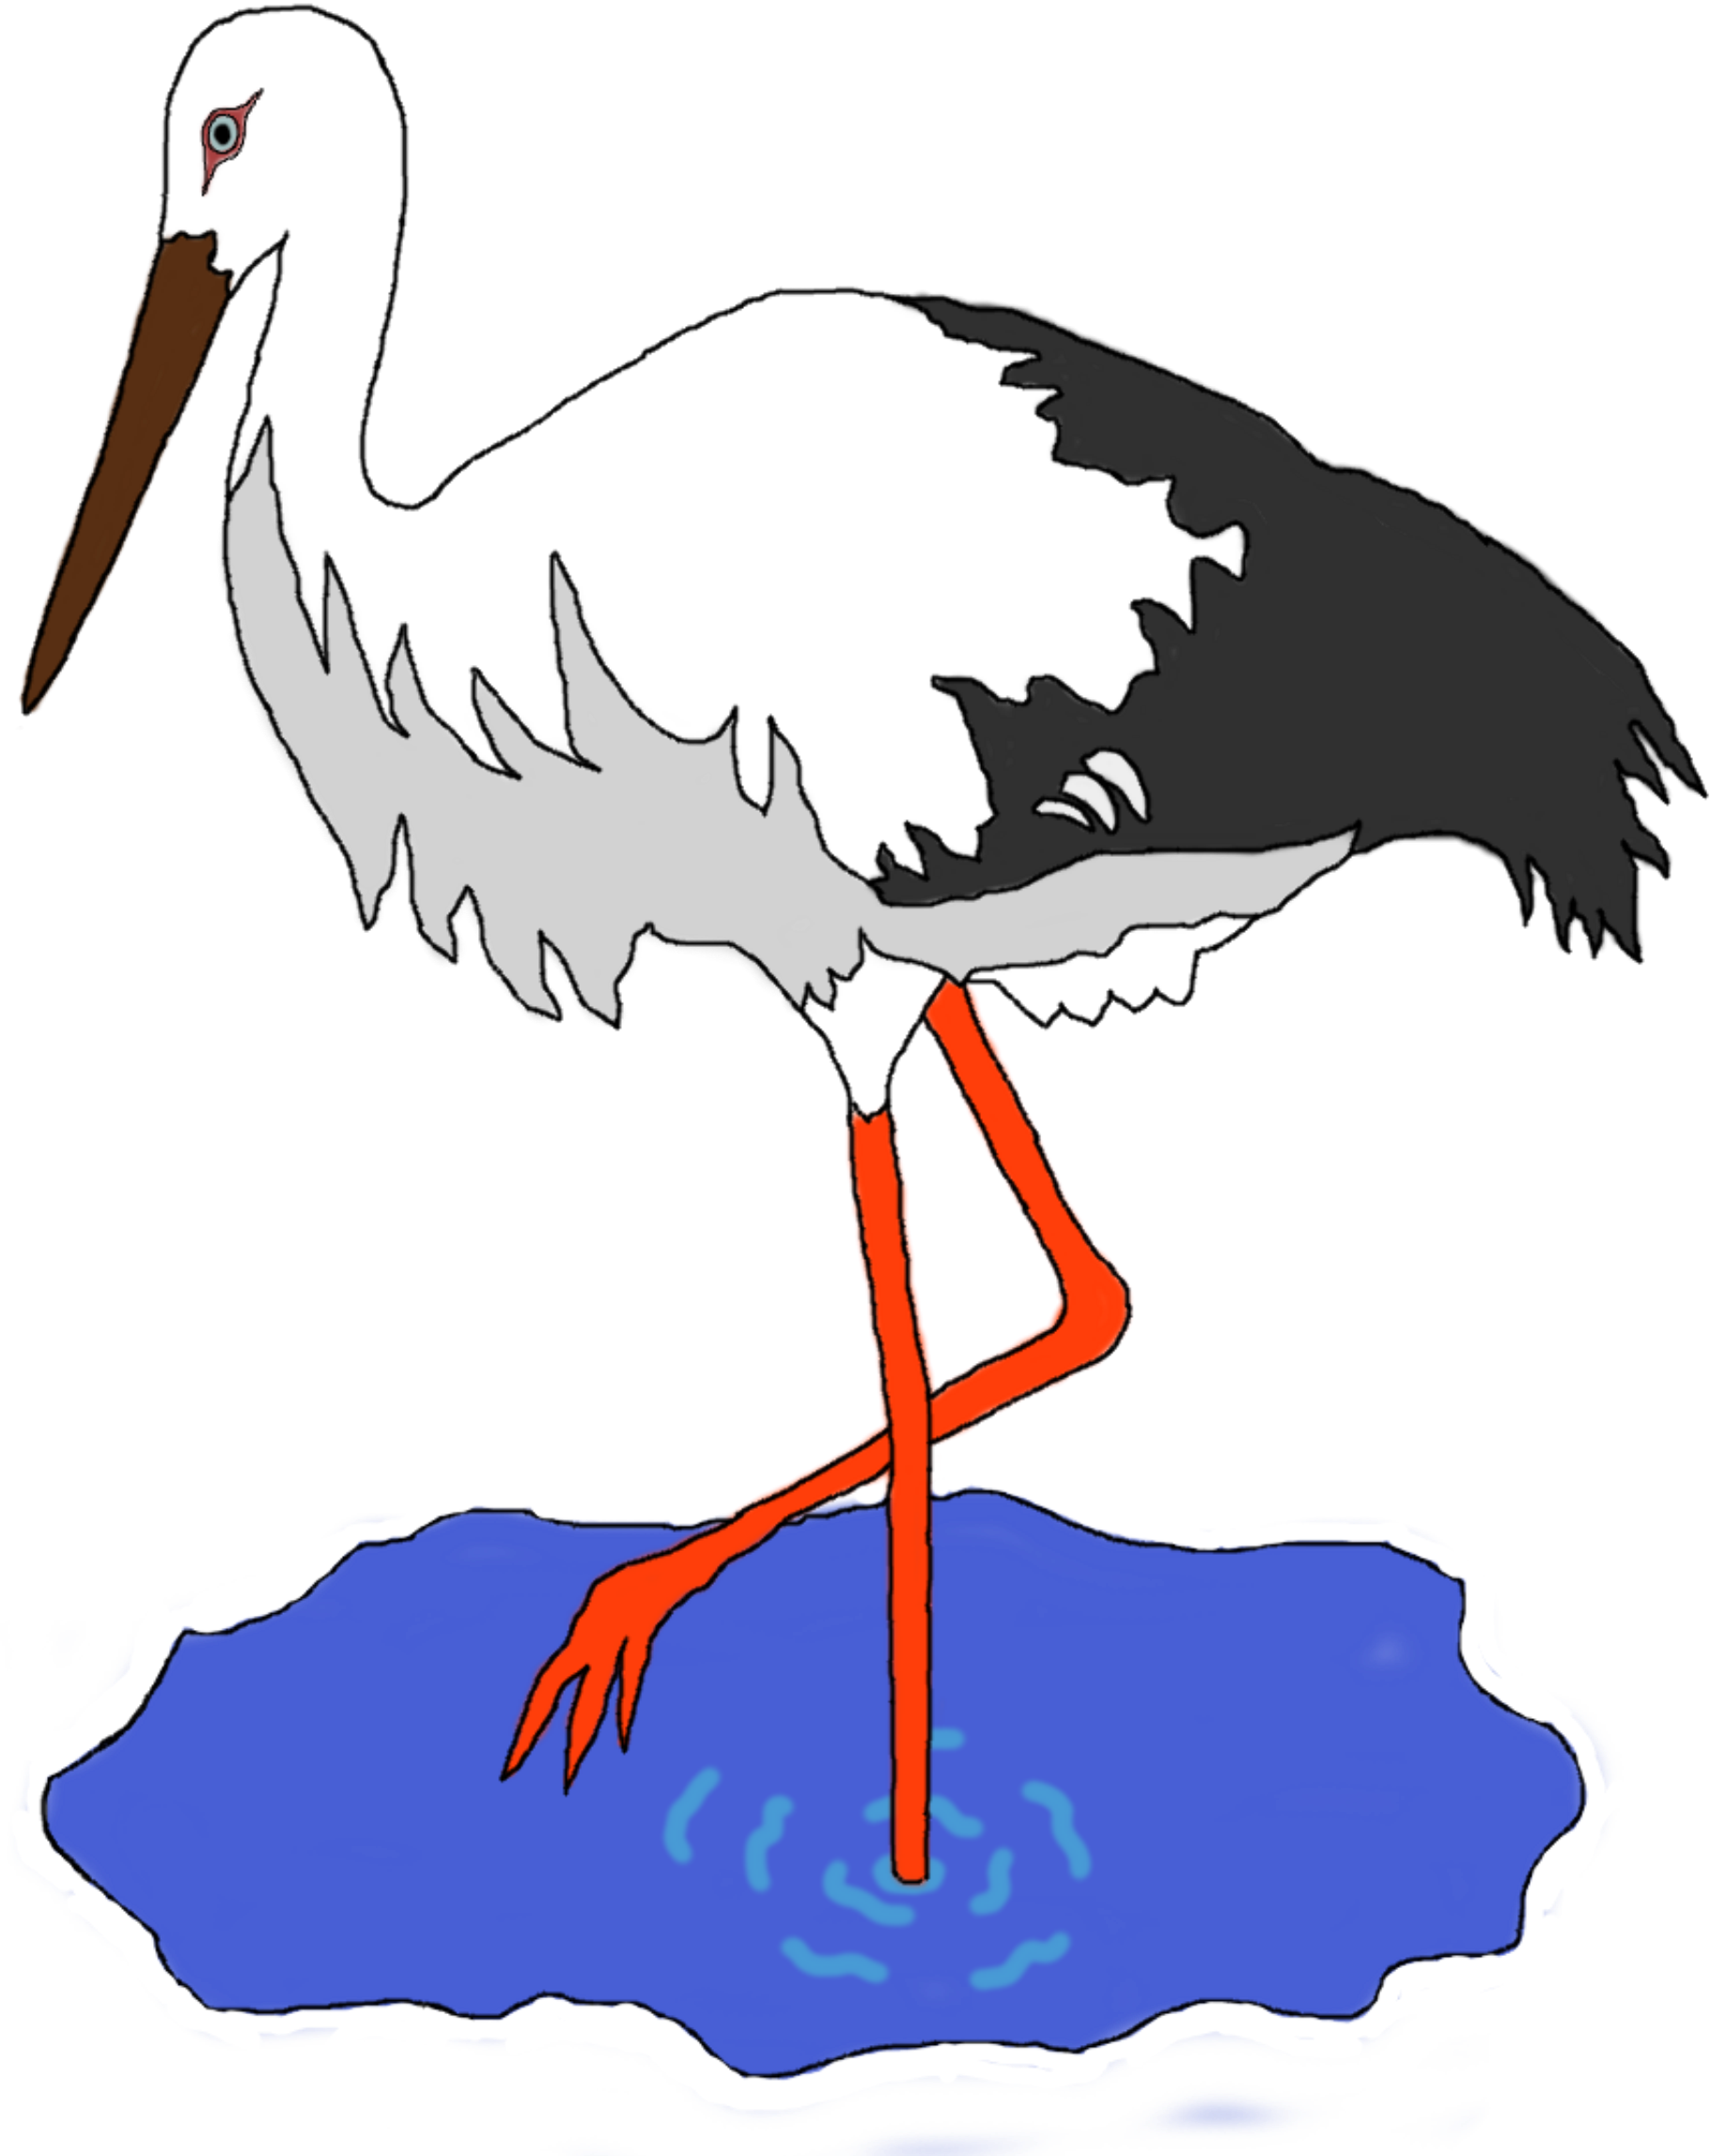 Stork in a pond by kress